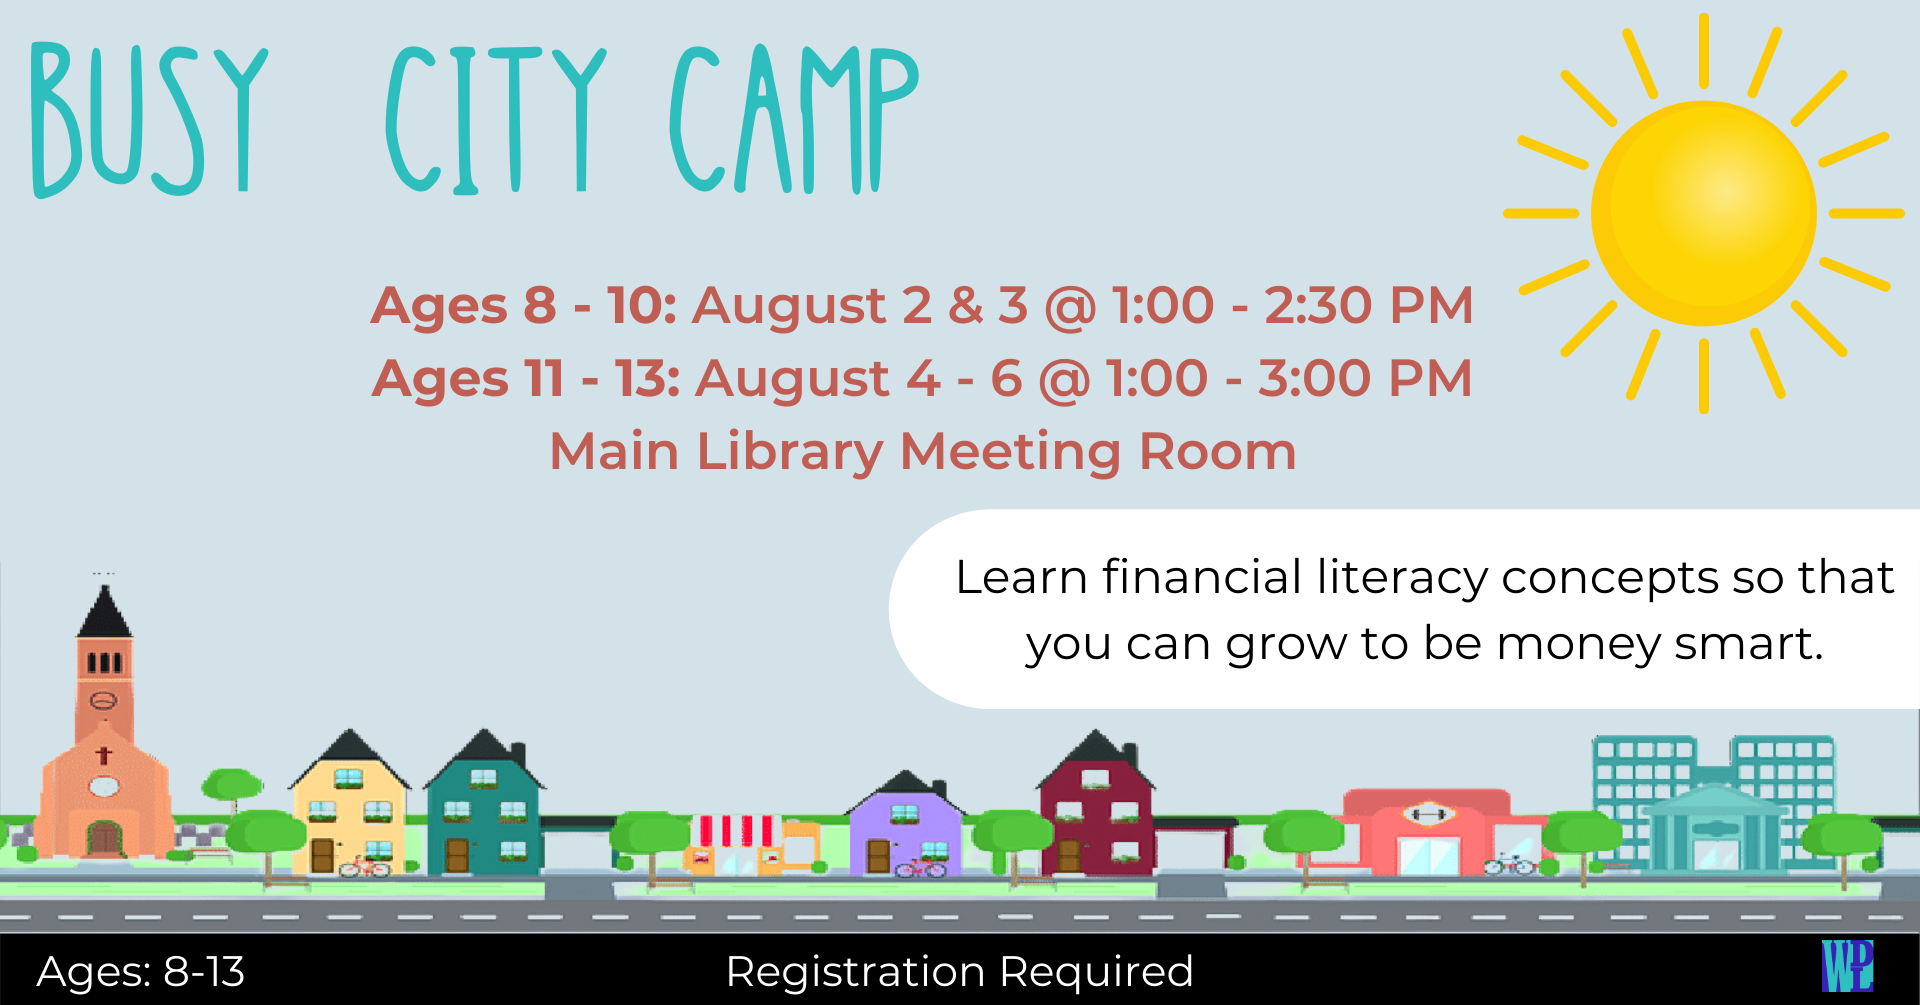 Busy City Camp